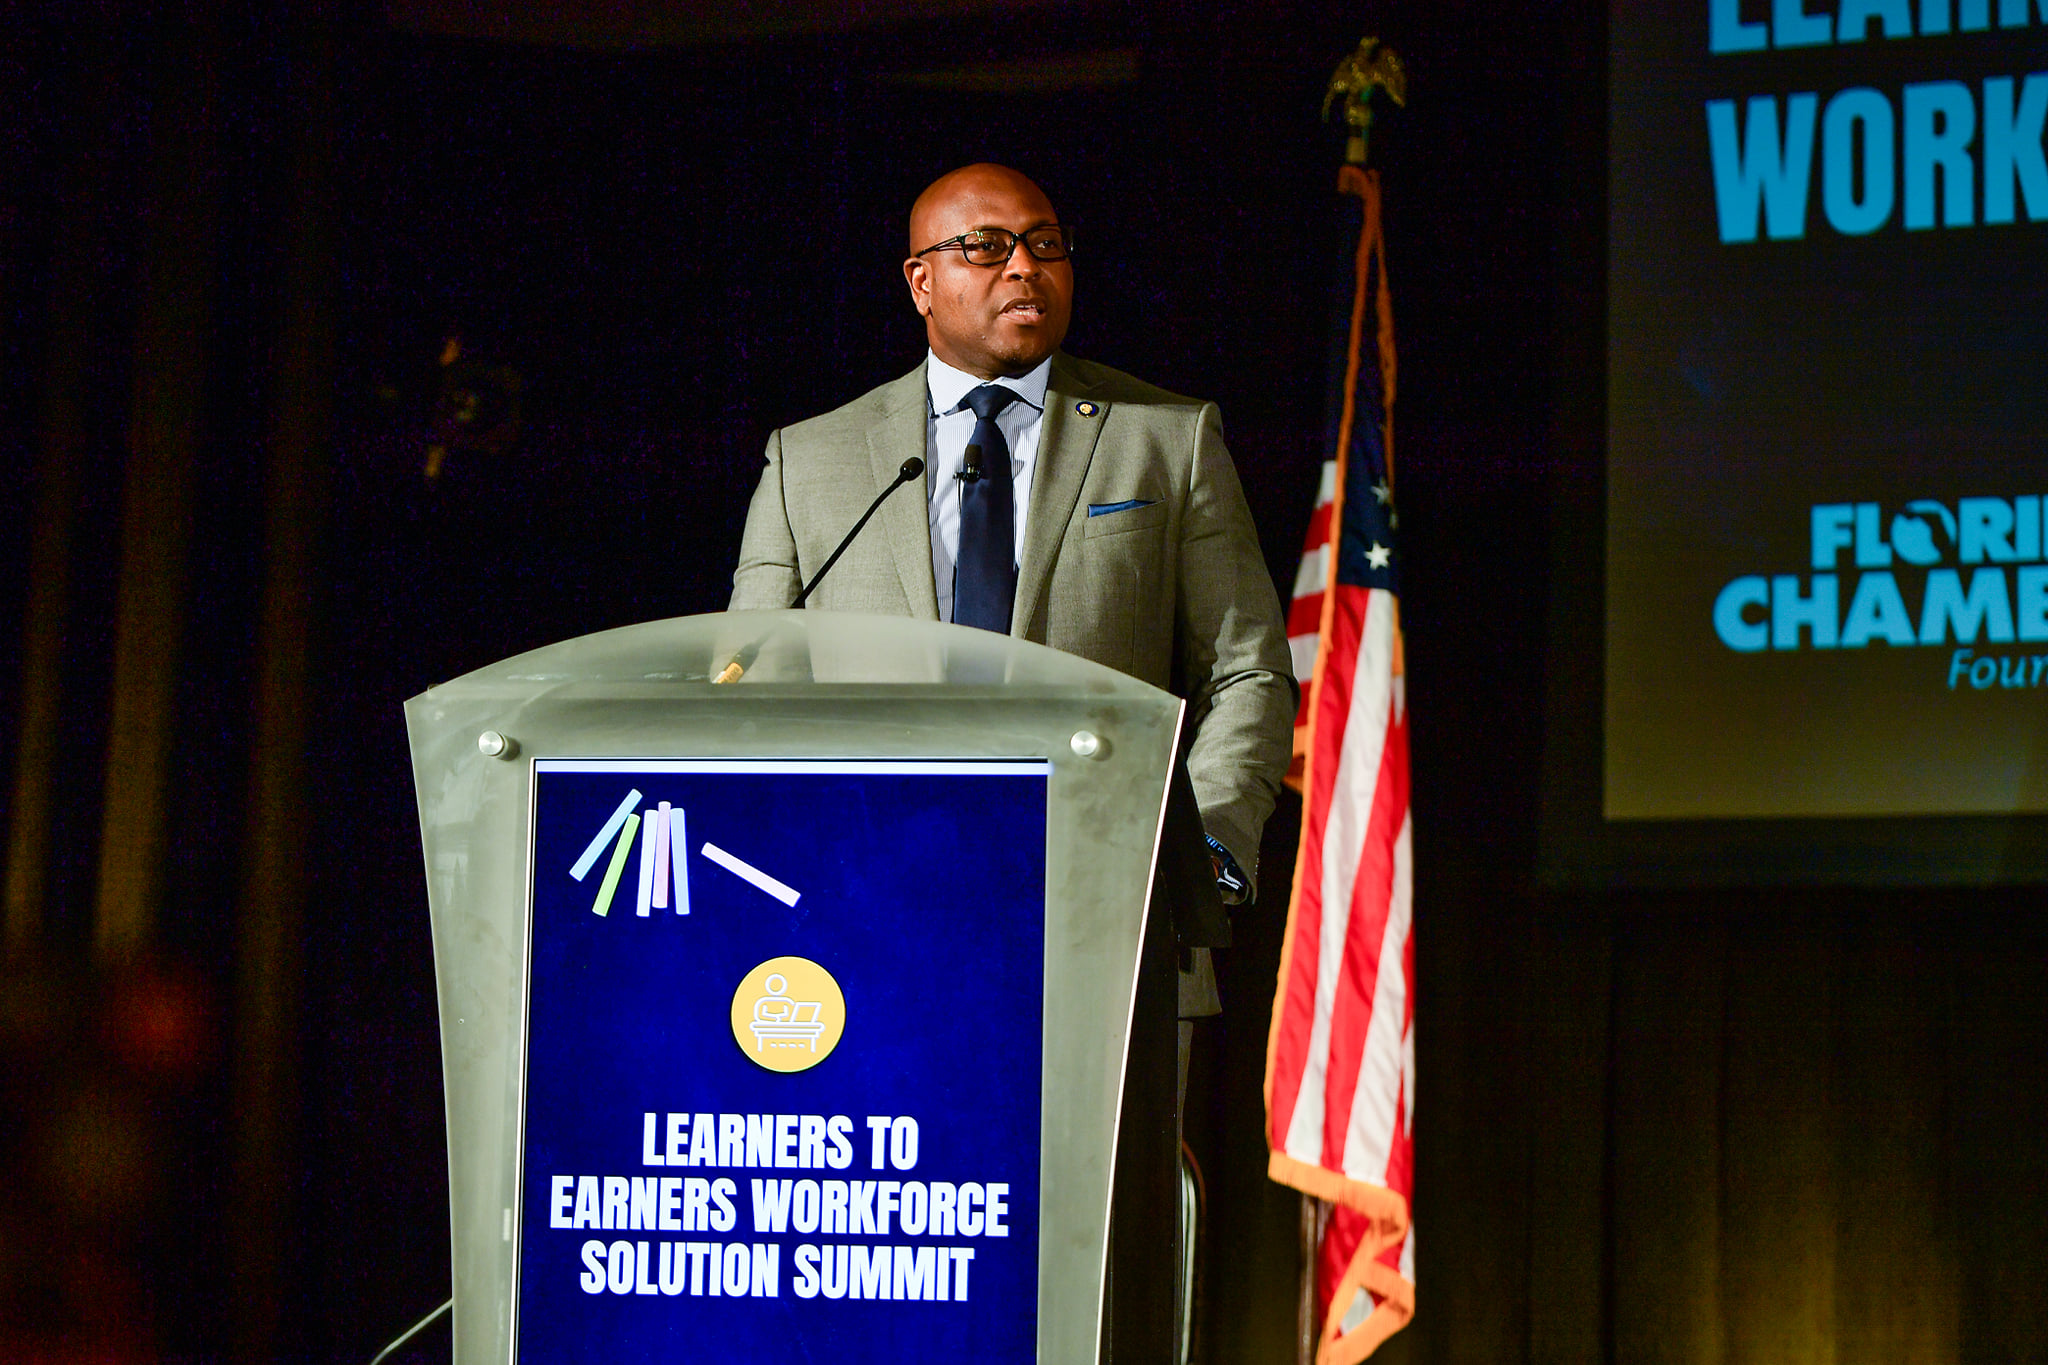 Florida Lottery Secretary John Davis speaks during the Florida Chamber of Commerce's Learners to Earners Workforce Summit at the Wyndham Orlando Resort Bonnet Creek Tuesday, June 15, 2021. Photo: Harry Castiblanco/Florida National News.